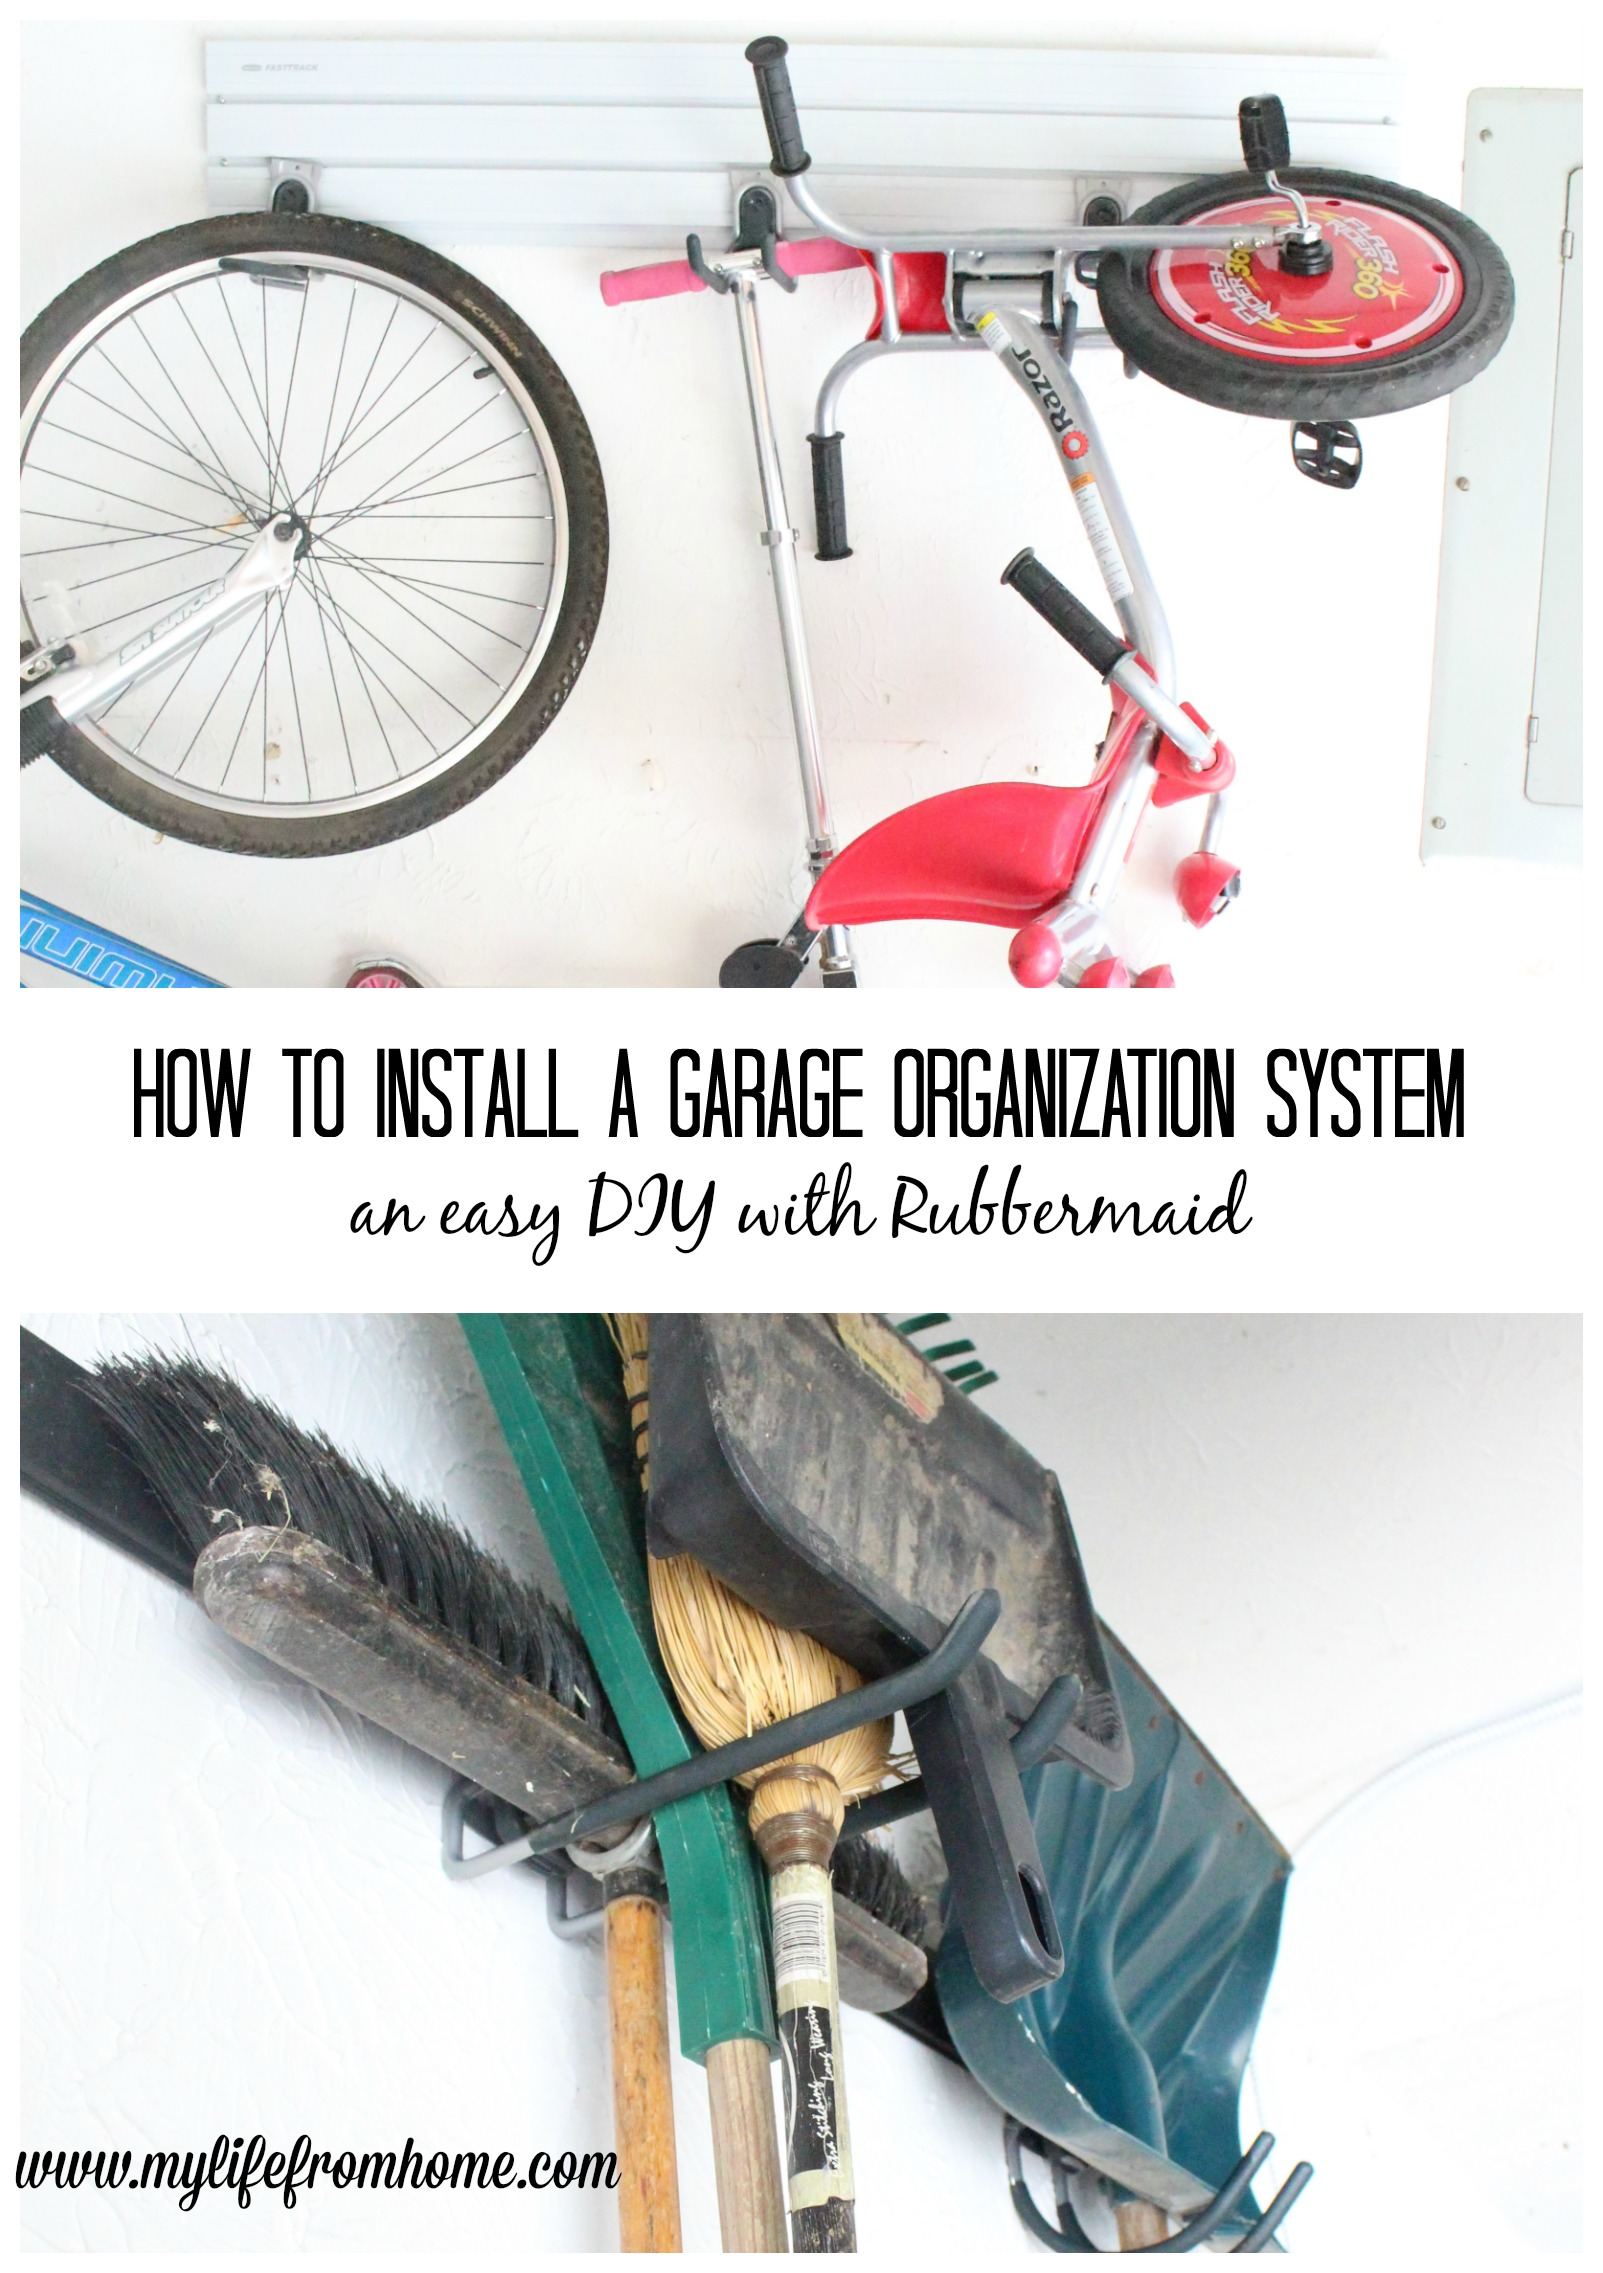 How to Install a Garage Organization System by Rubbermaid garage organization Rubbermaid garage system organizing your garage garage clean up